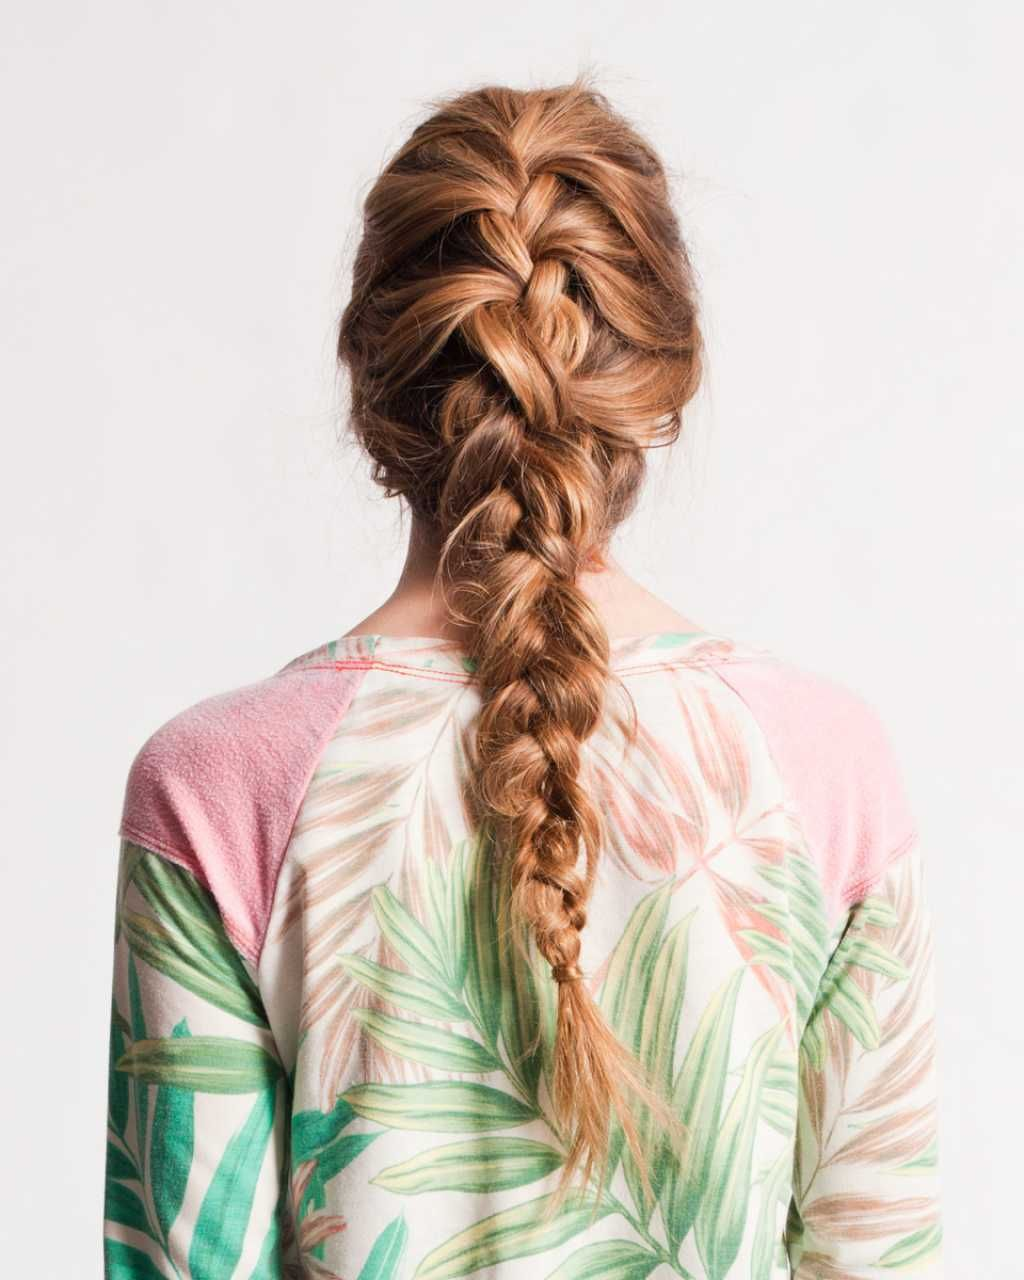 Classic French braid hairstyle for long hair :: one1lady.com :: #hair #hairs #hairstyle #hairstyles